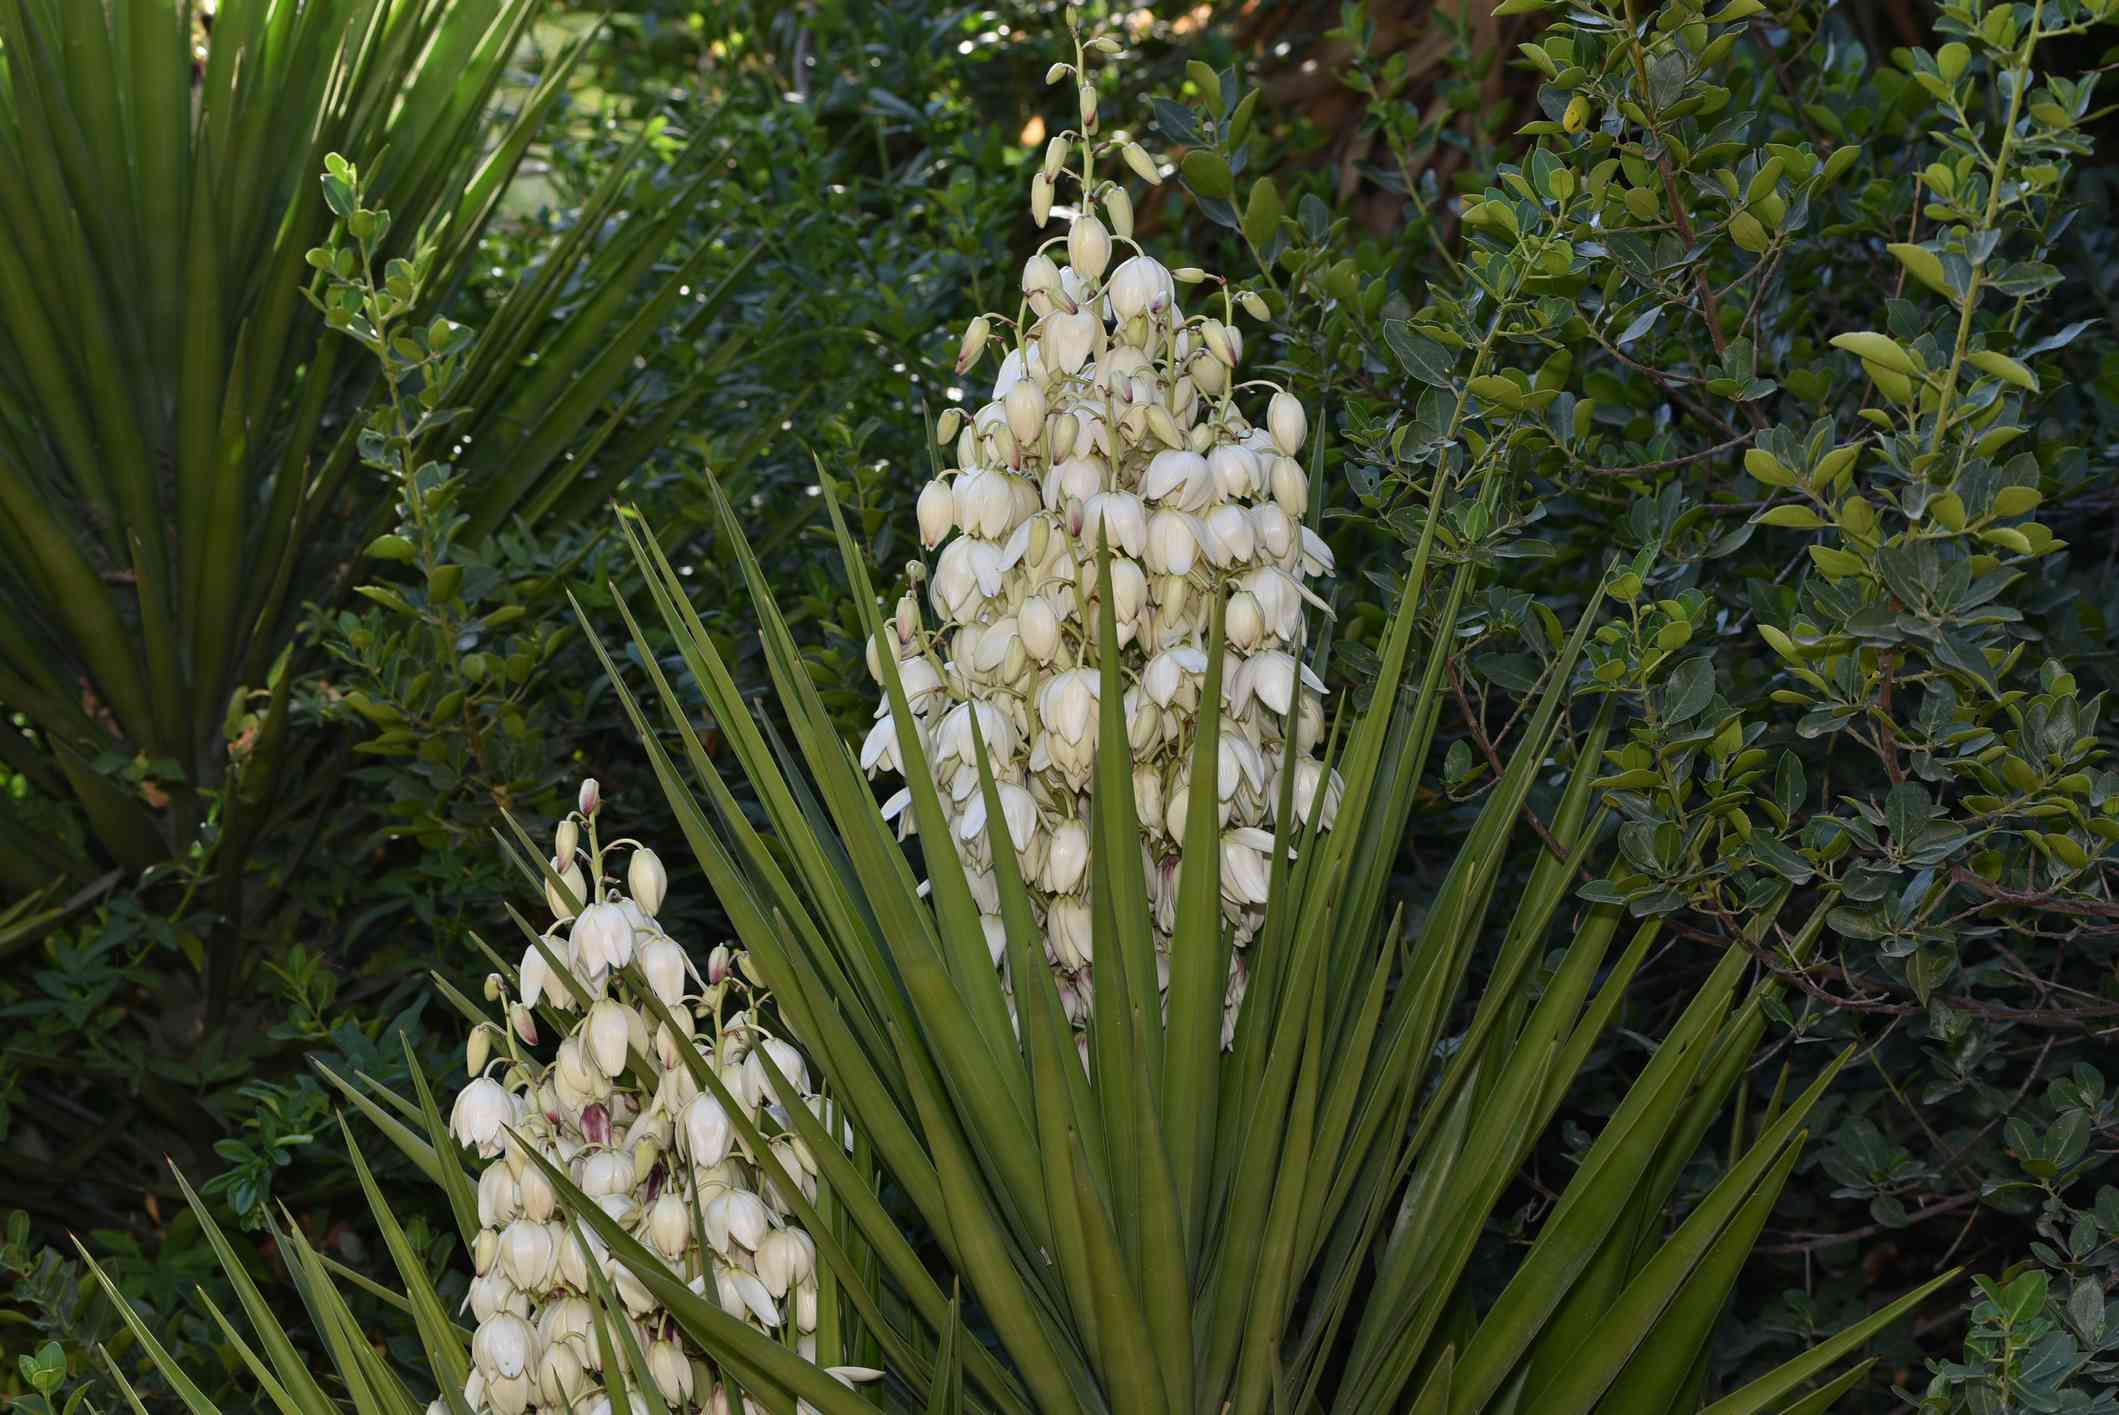 Yucca Filamentosa with white flowers in bloom